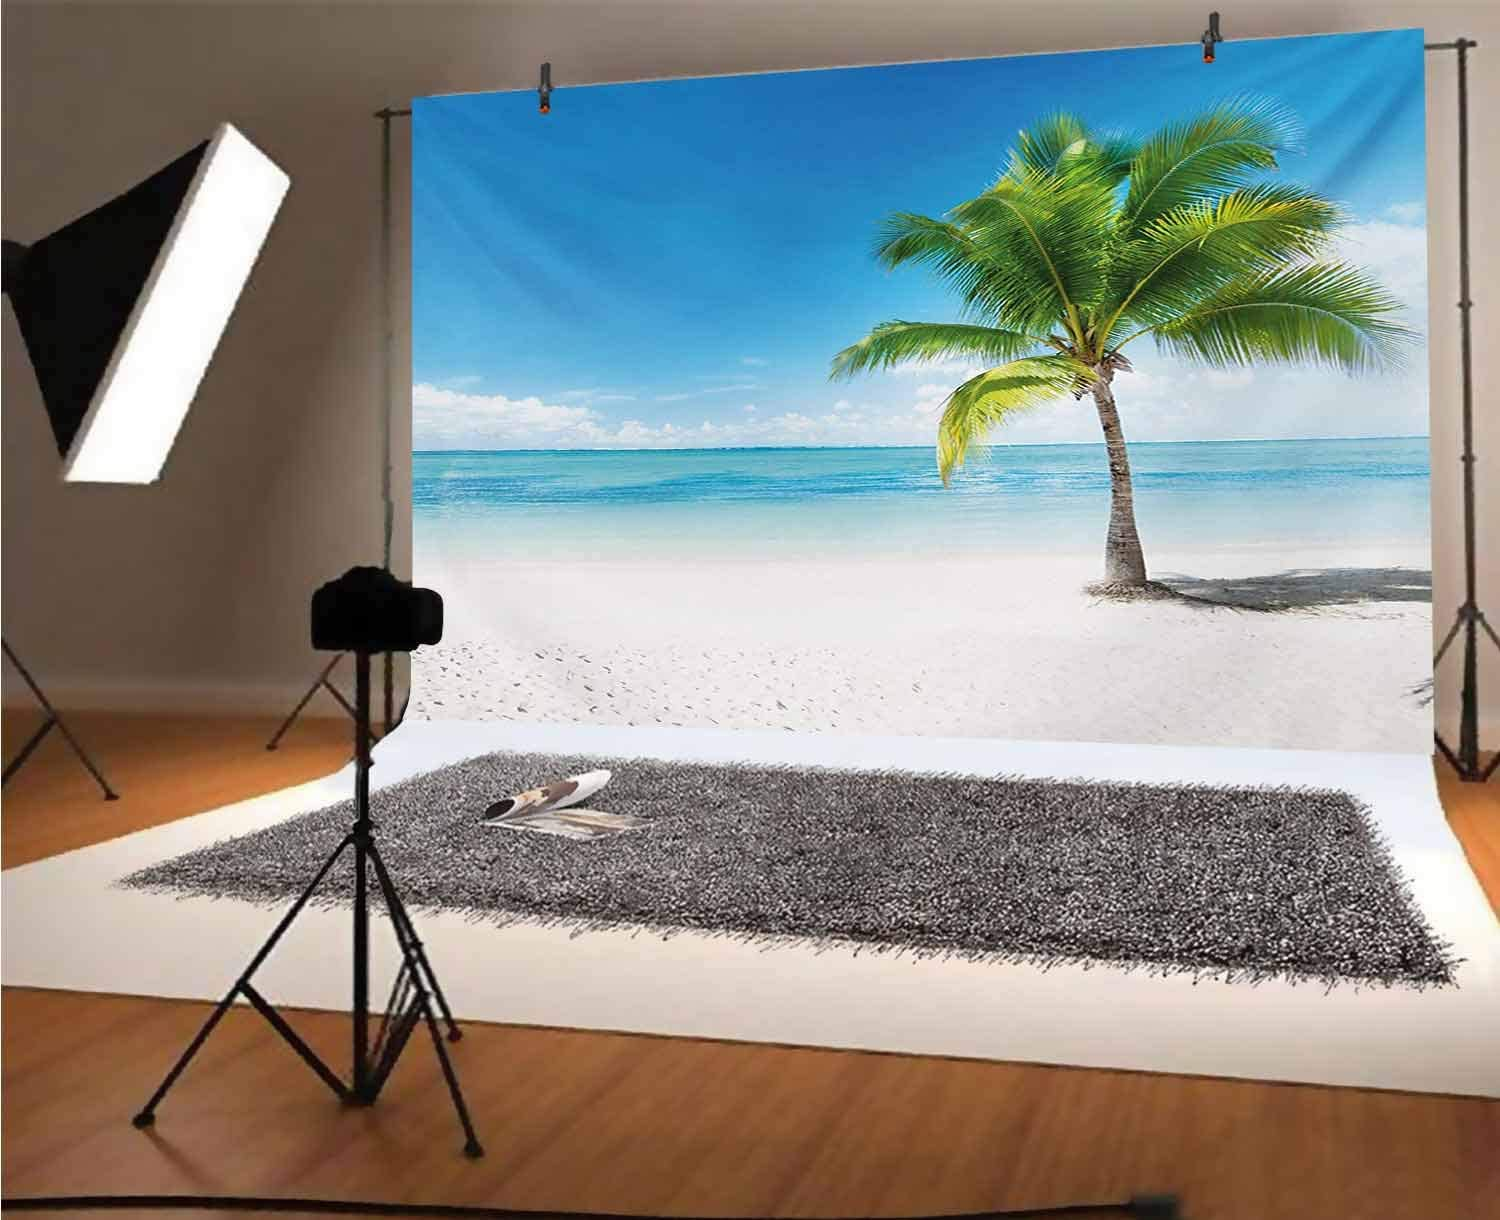 Landscape 10x12 FT Backdrop Photographers,Caribbean Maldives Beach Island Sea Ocean Palm Trees Artwork Print Background for Baby Shower Bridal Wedding Studio Photography Pictures